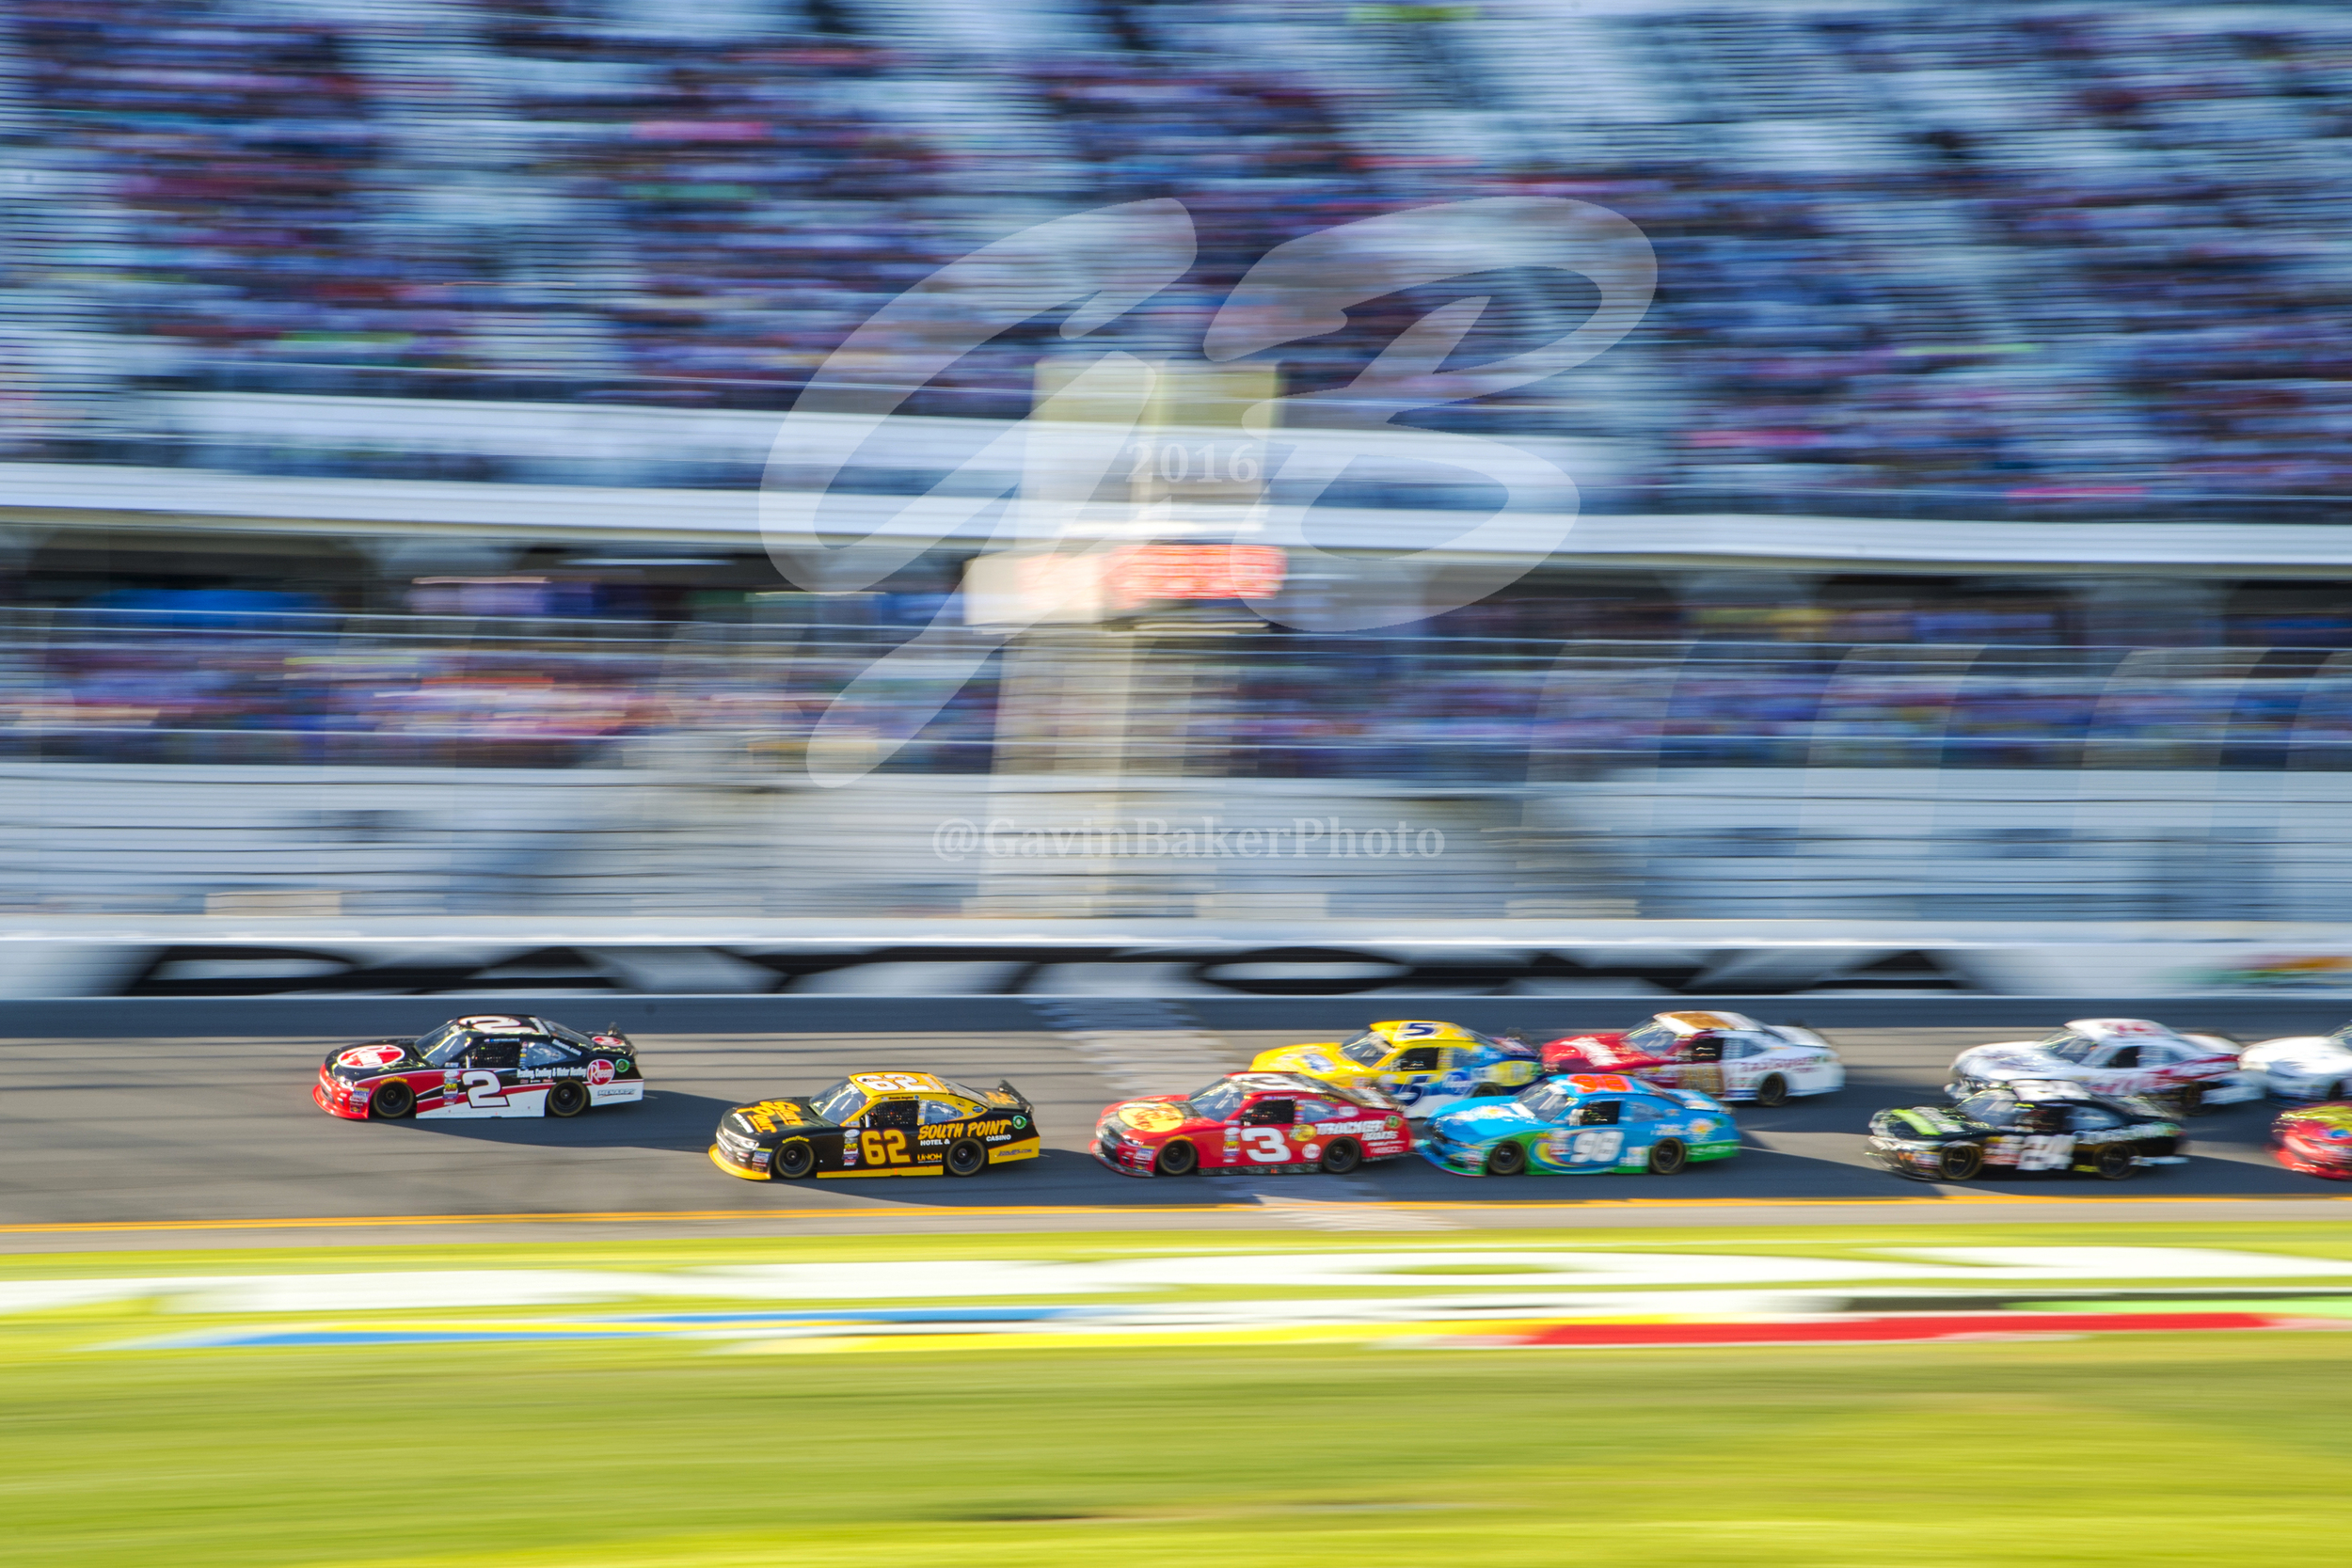 The #2 Rheem Chevy, driven by Austin Dillon,leads the pack down the front strait during the Xfinity race